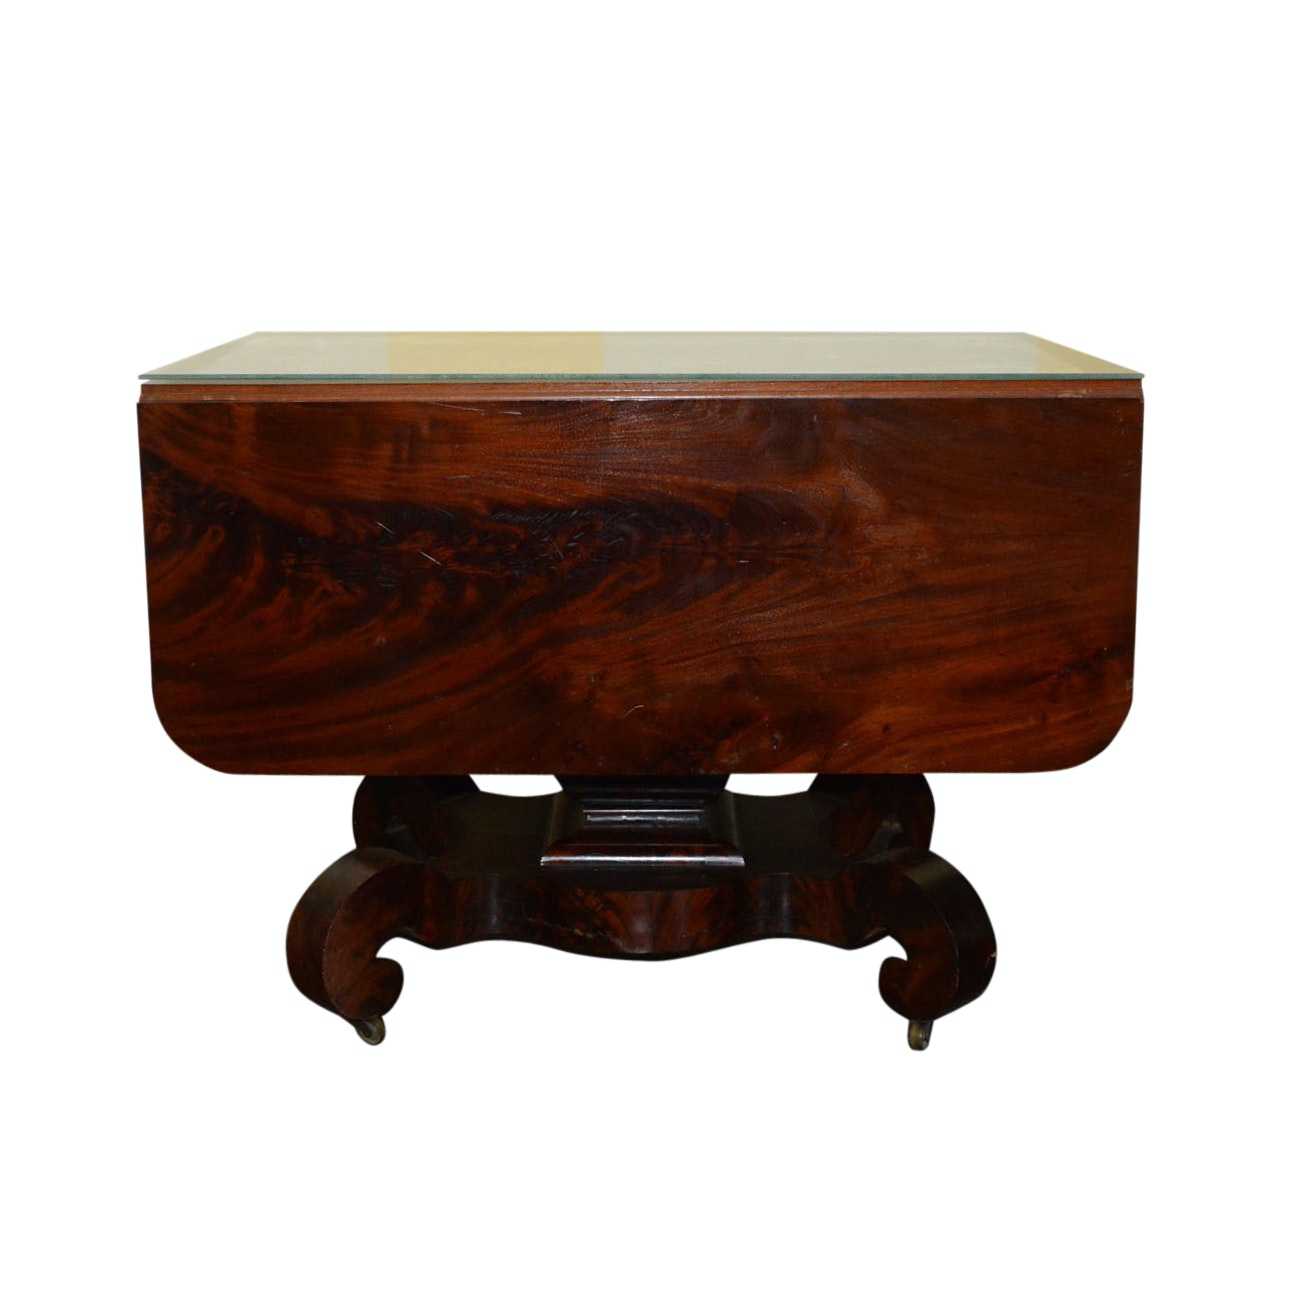 American Empire Style Mahogany Drop Leaf Table